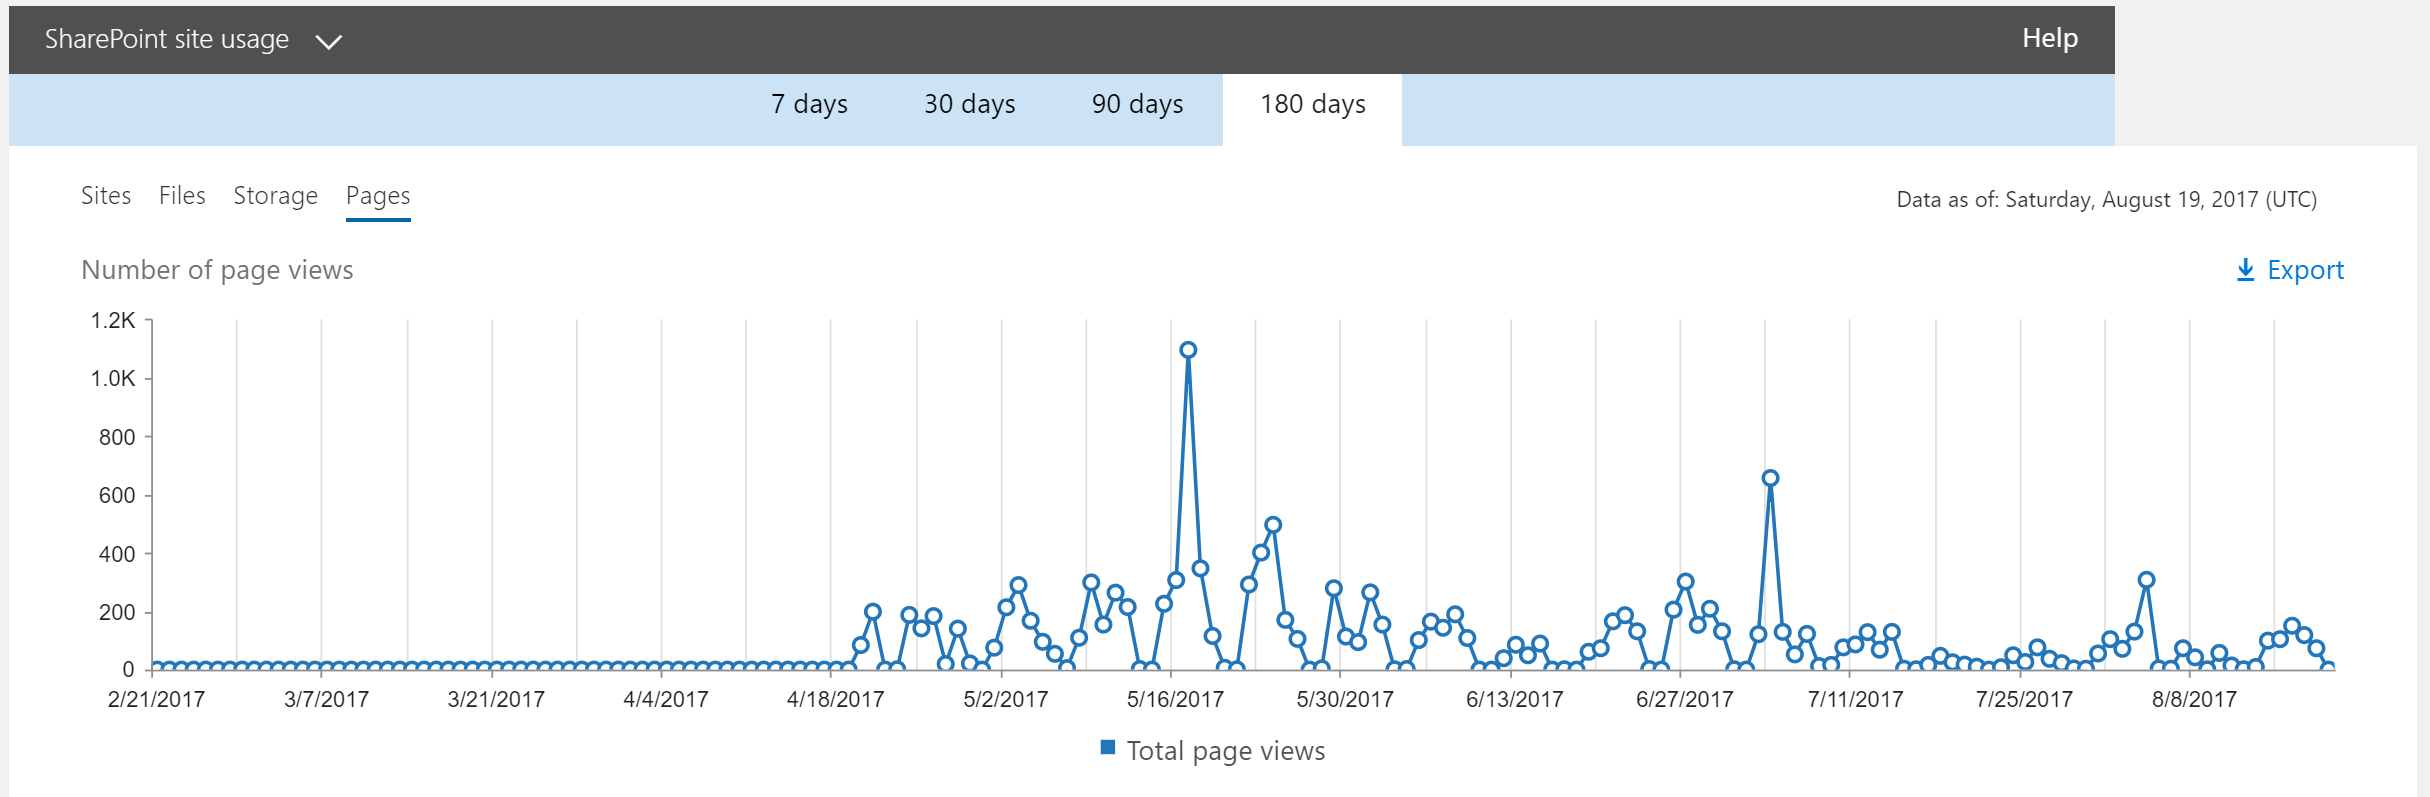 SharePoint Activity Report page views